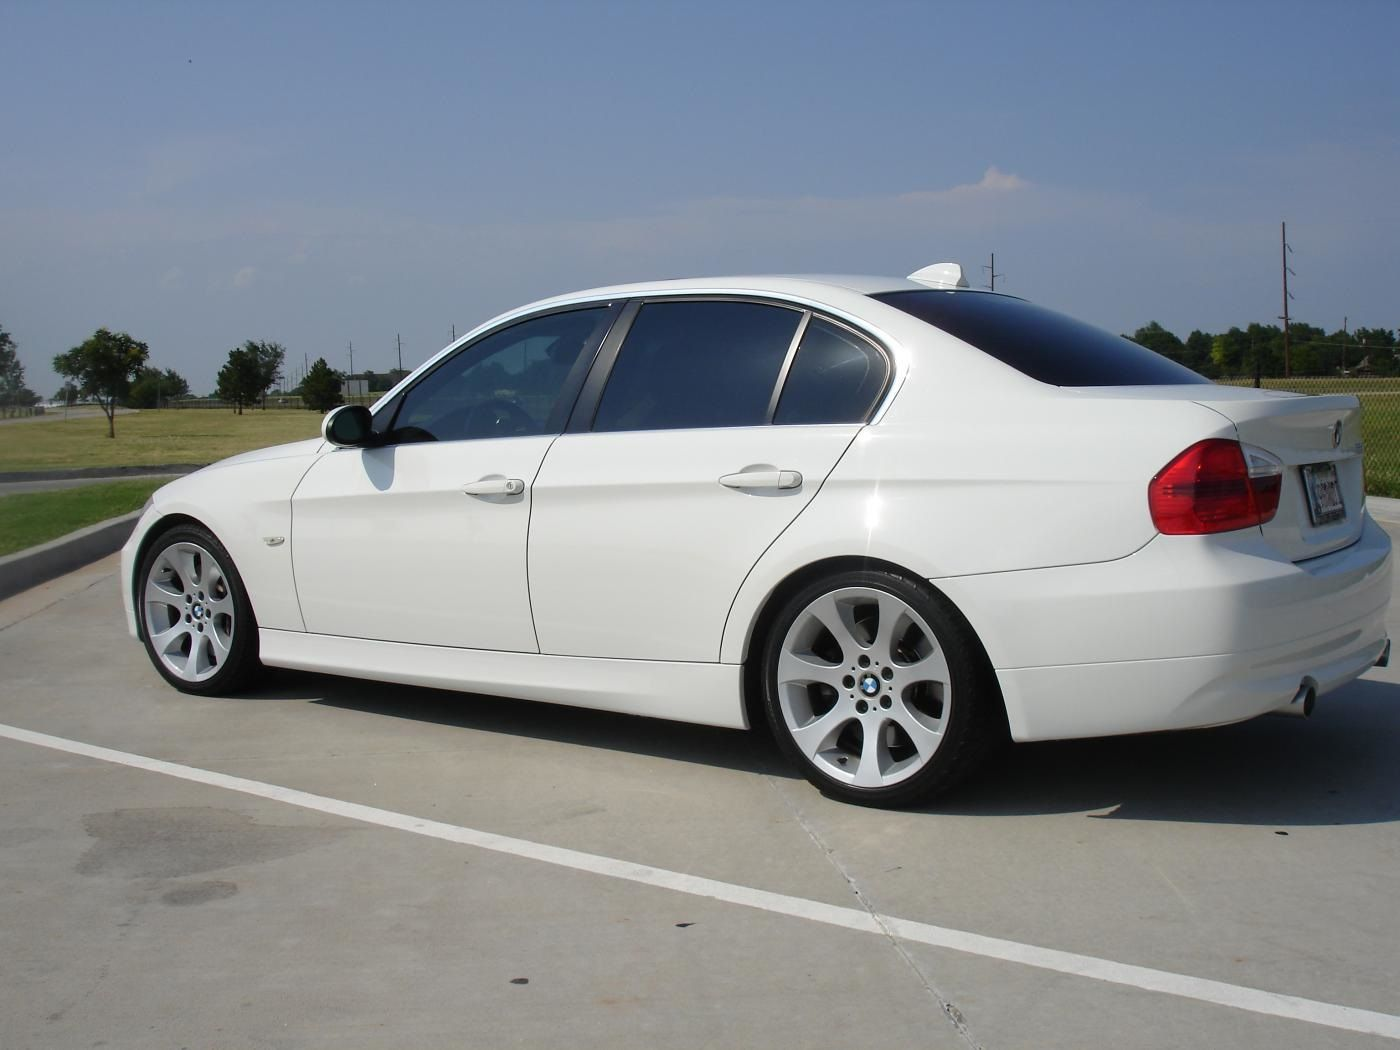 List Of Used 2007 BMW 3 Series 335i For Sale Online Listings For ...